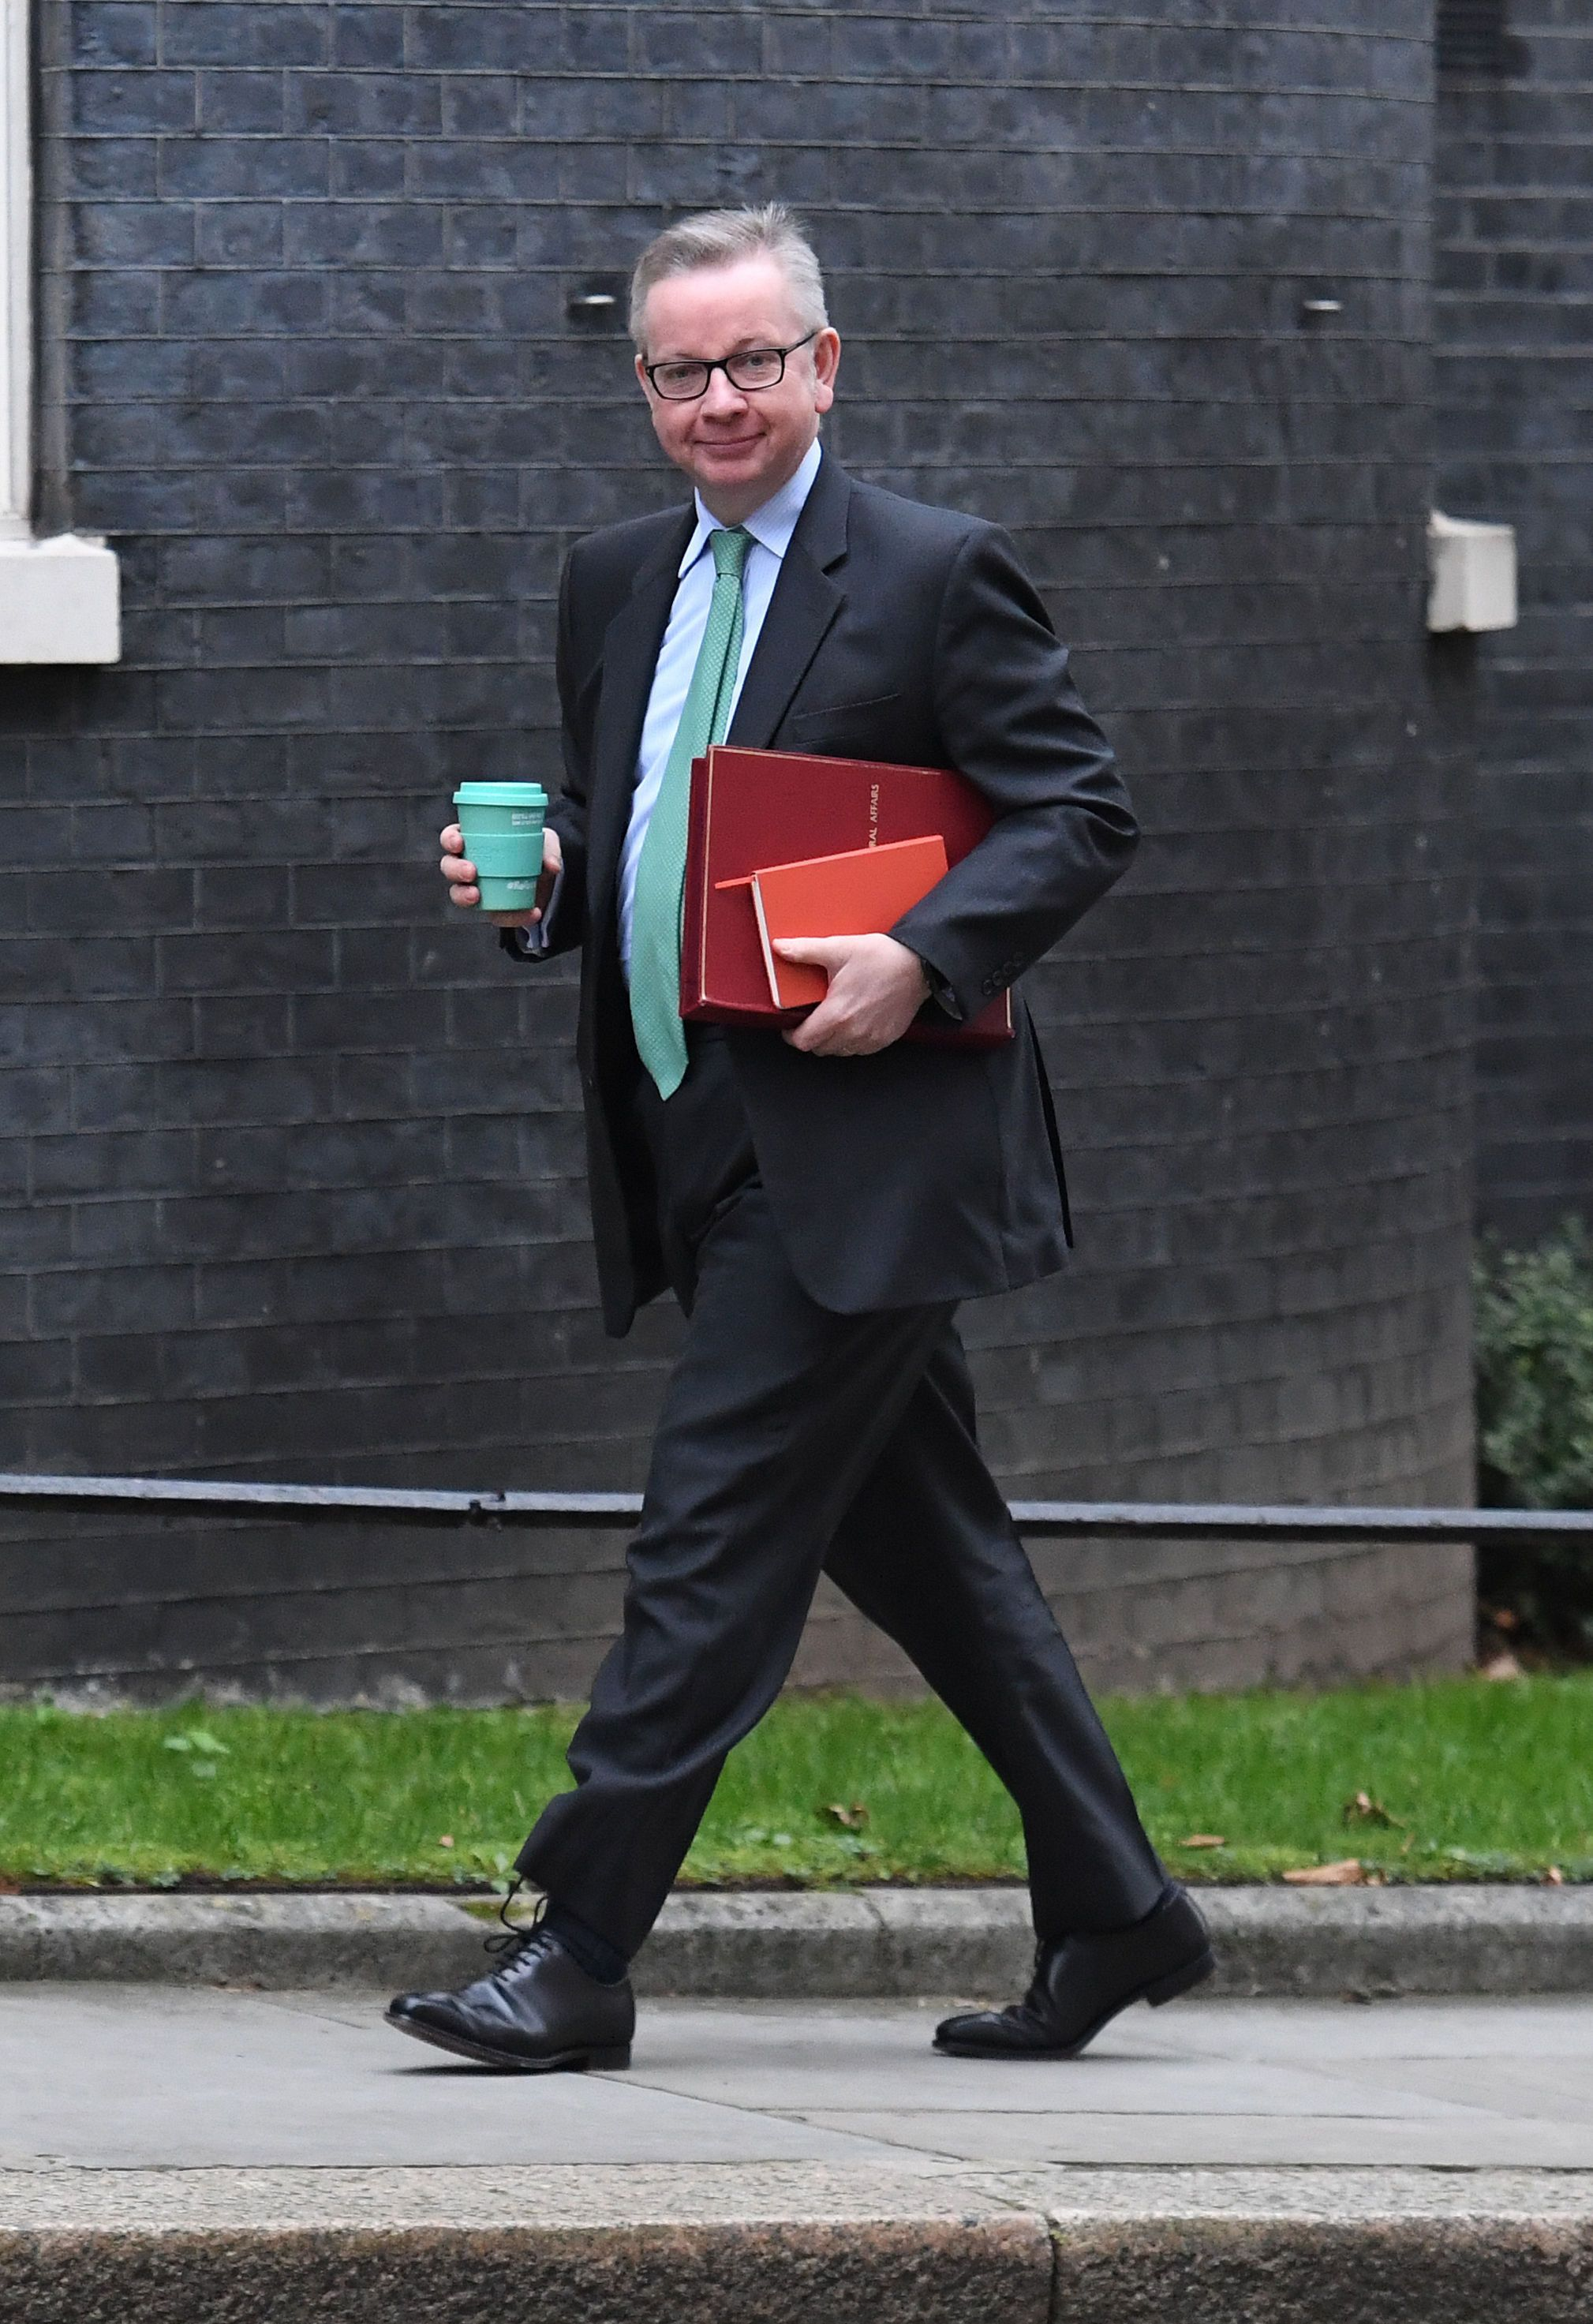 <i>Environment Secretary Michael Gove holds a reusable coffee cup as he arrives in Downing Street for a Cabinet meeting.</i>